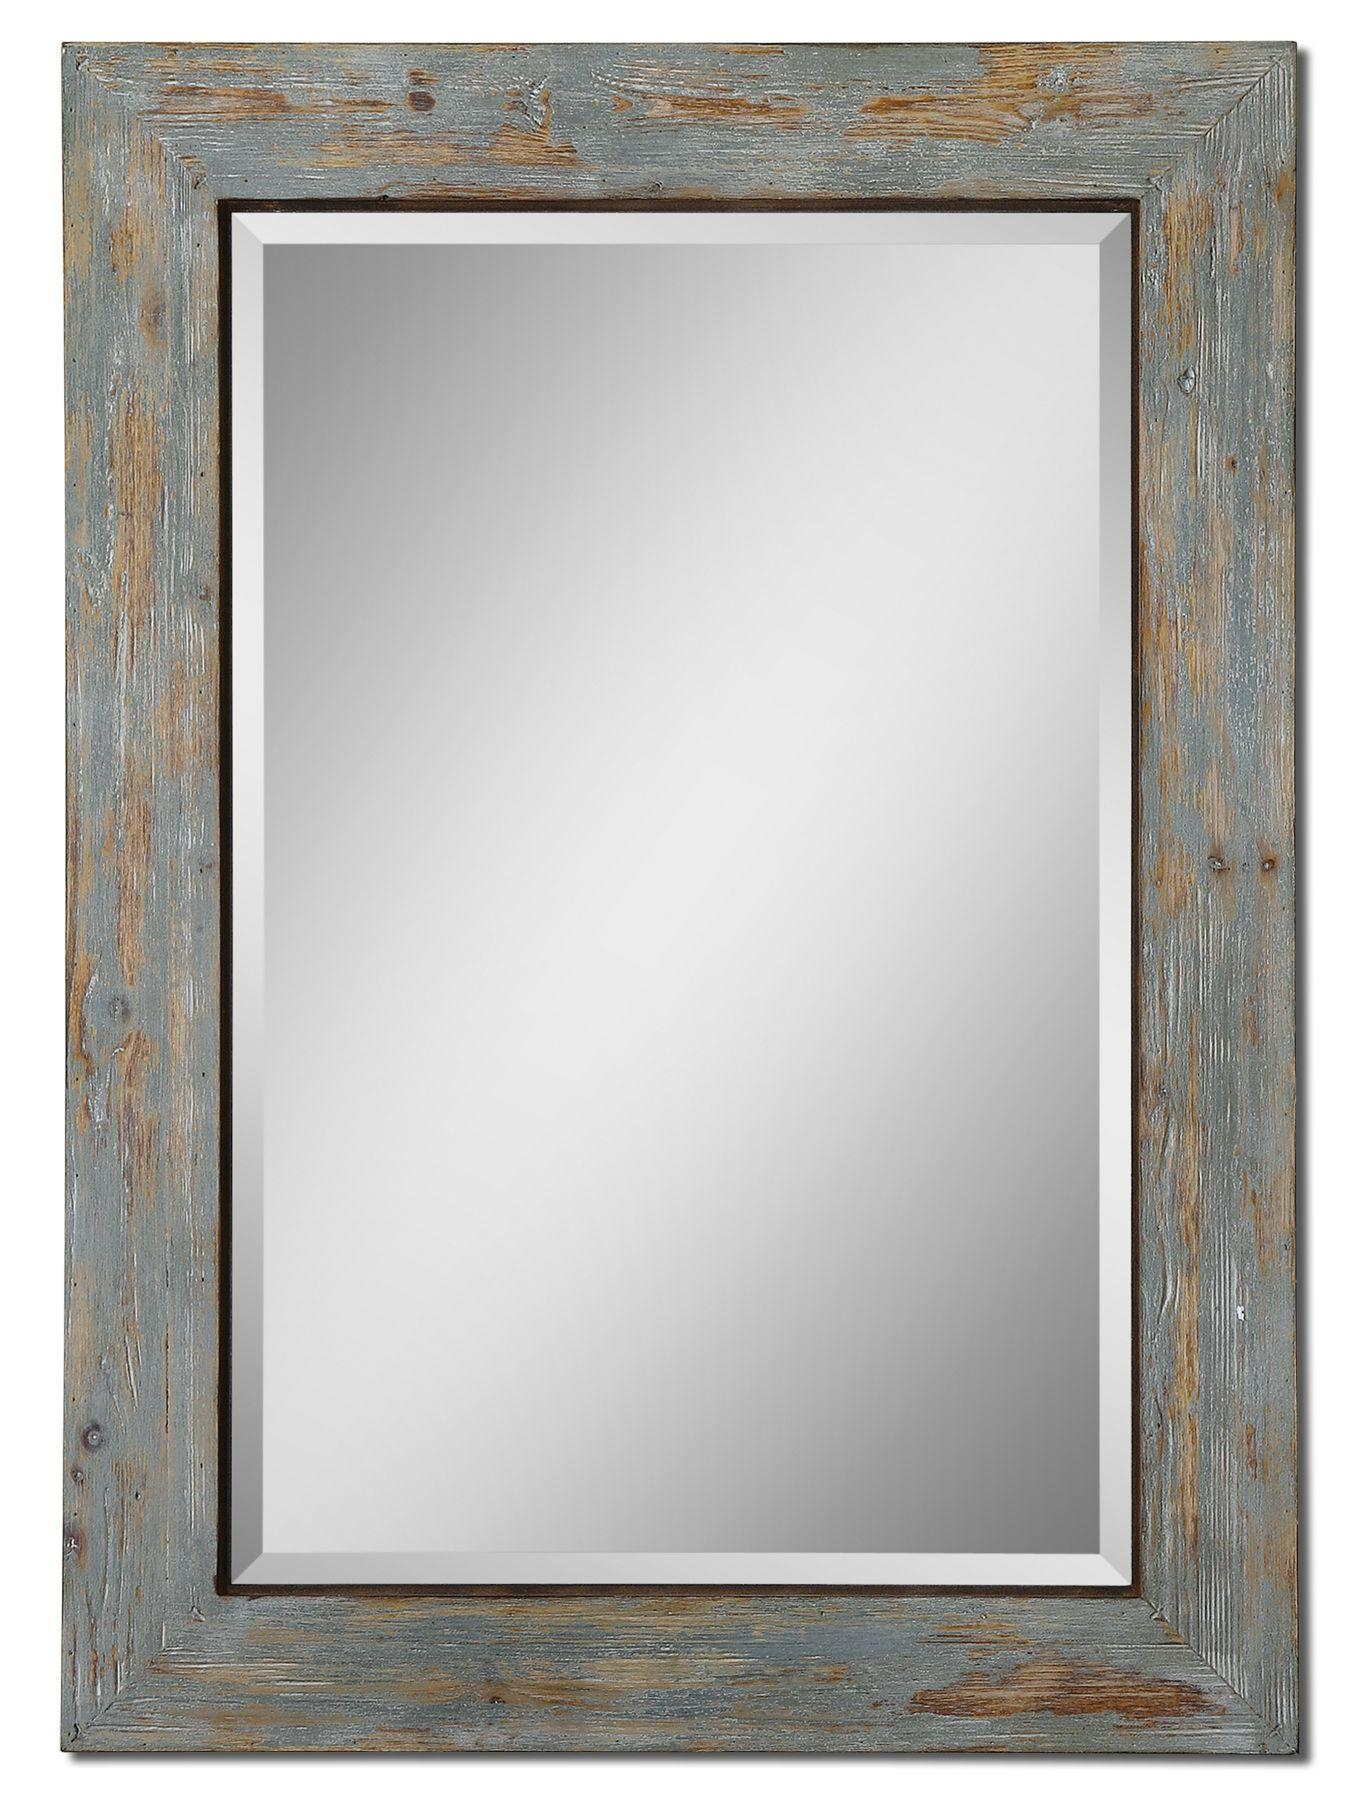 Uttermost Altino Distressed Wood Mirror 13818 Regarding Distressed Framed Mirror (Image 18 of 20)